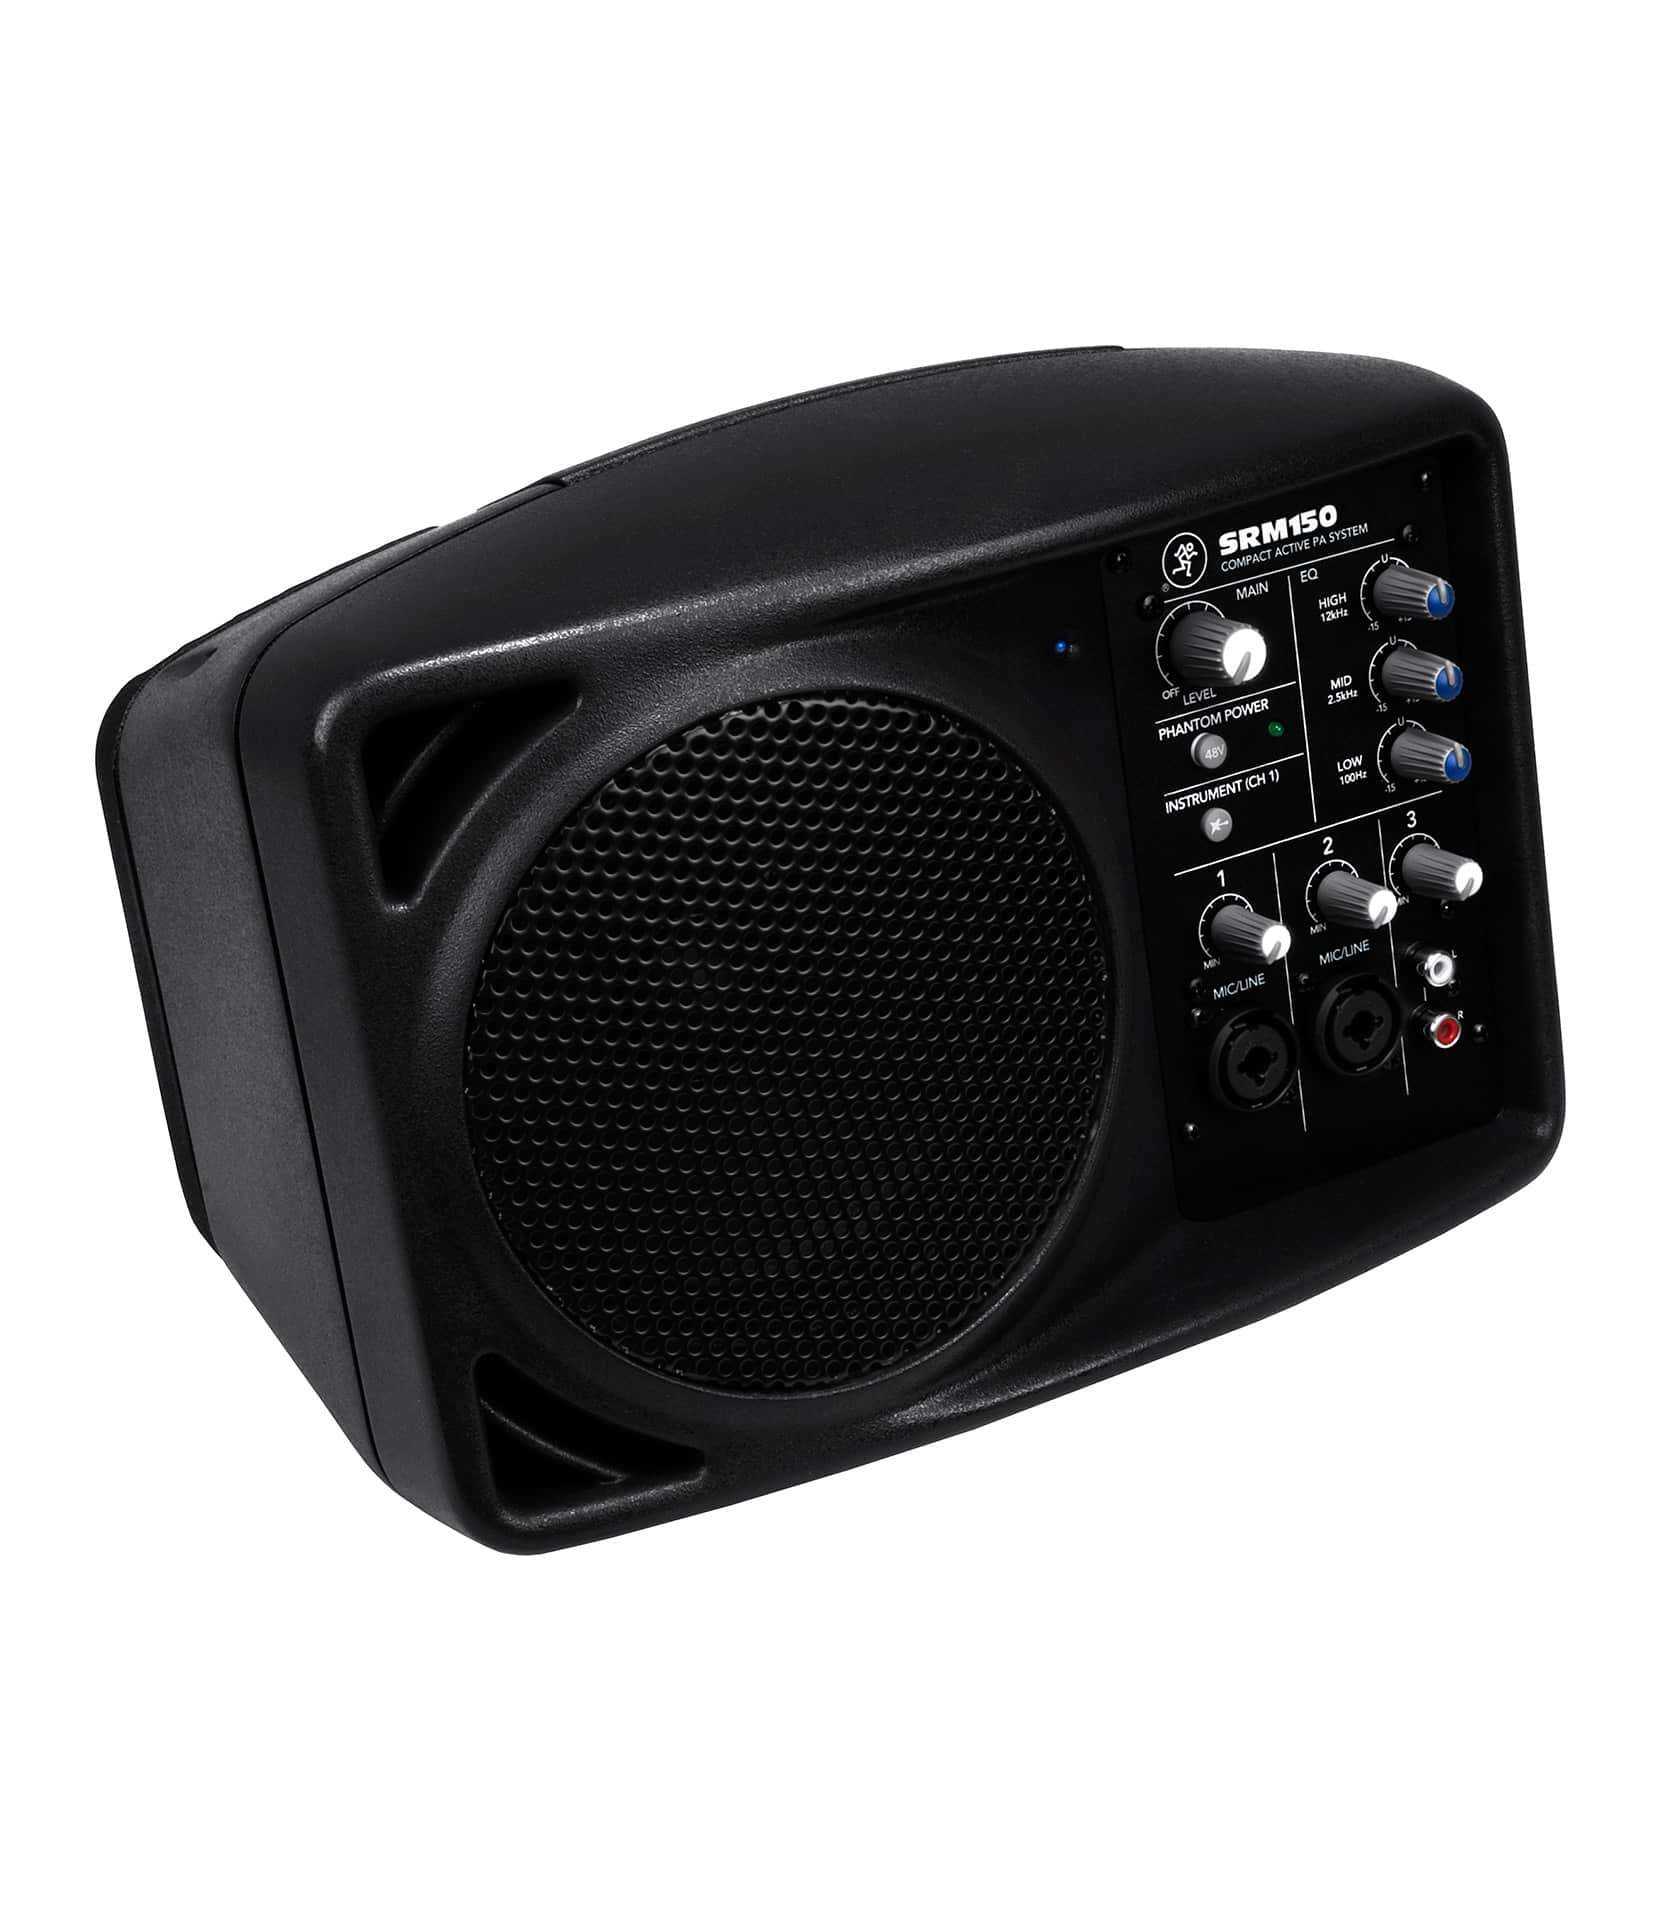 SRM150 5 25 Compact Powered PA System - Buy Online